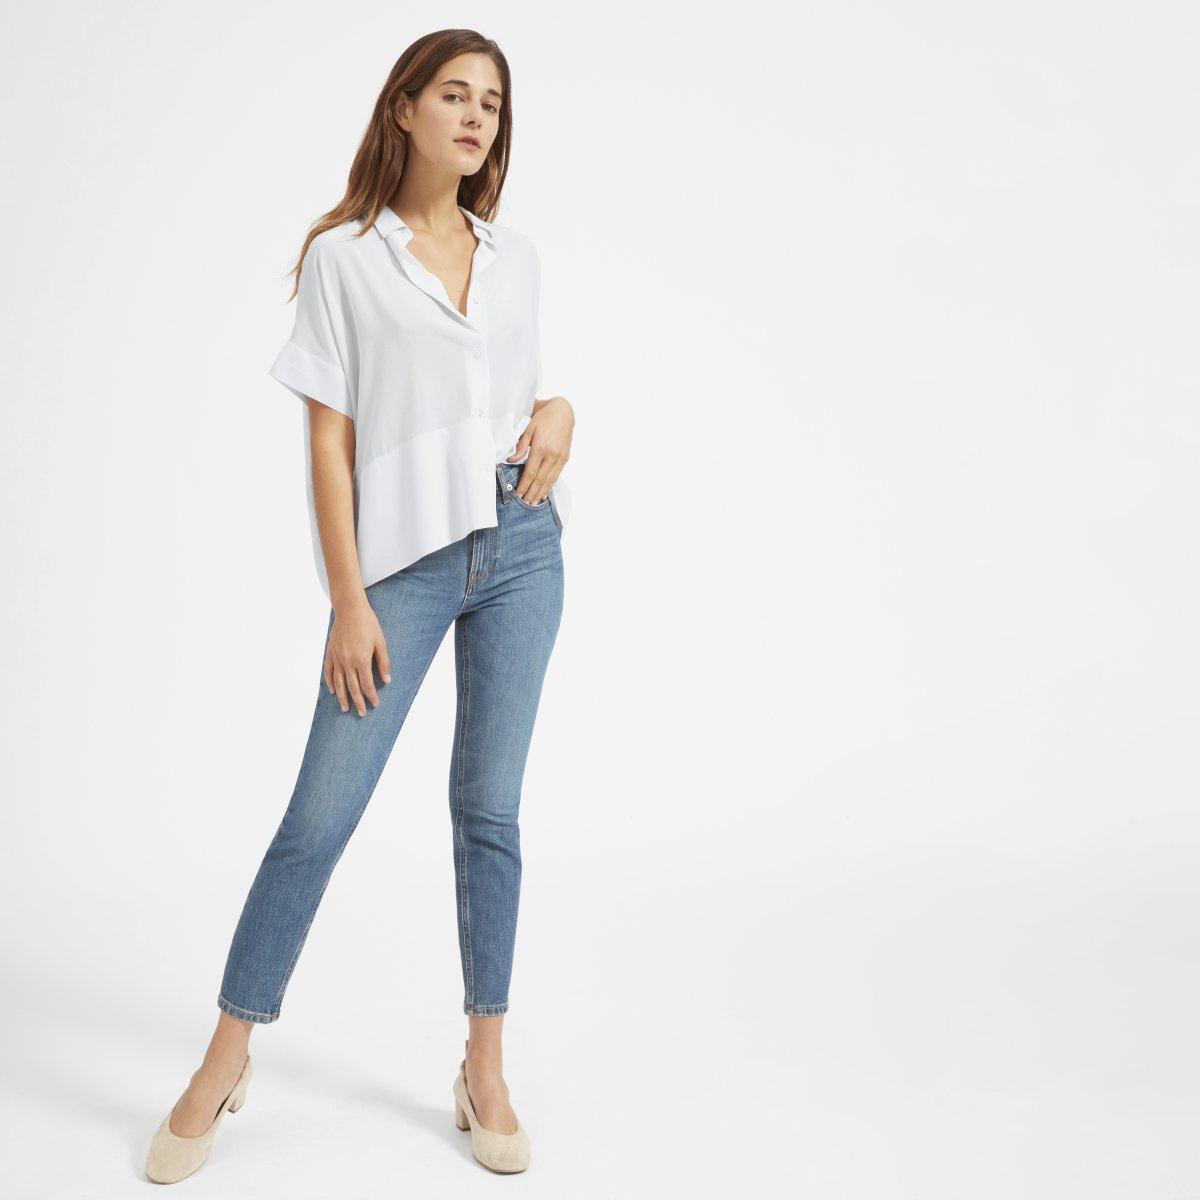 Everlane Is Launching Sustainable Clean Silk Everlane Is Launching Sustainable Clean Silk new pictures